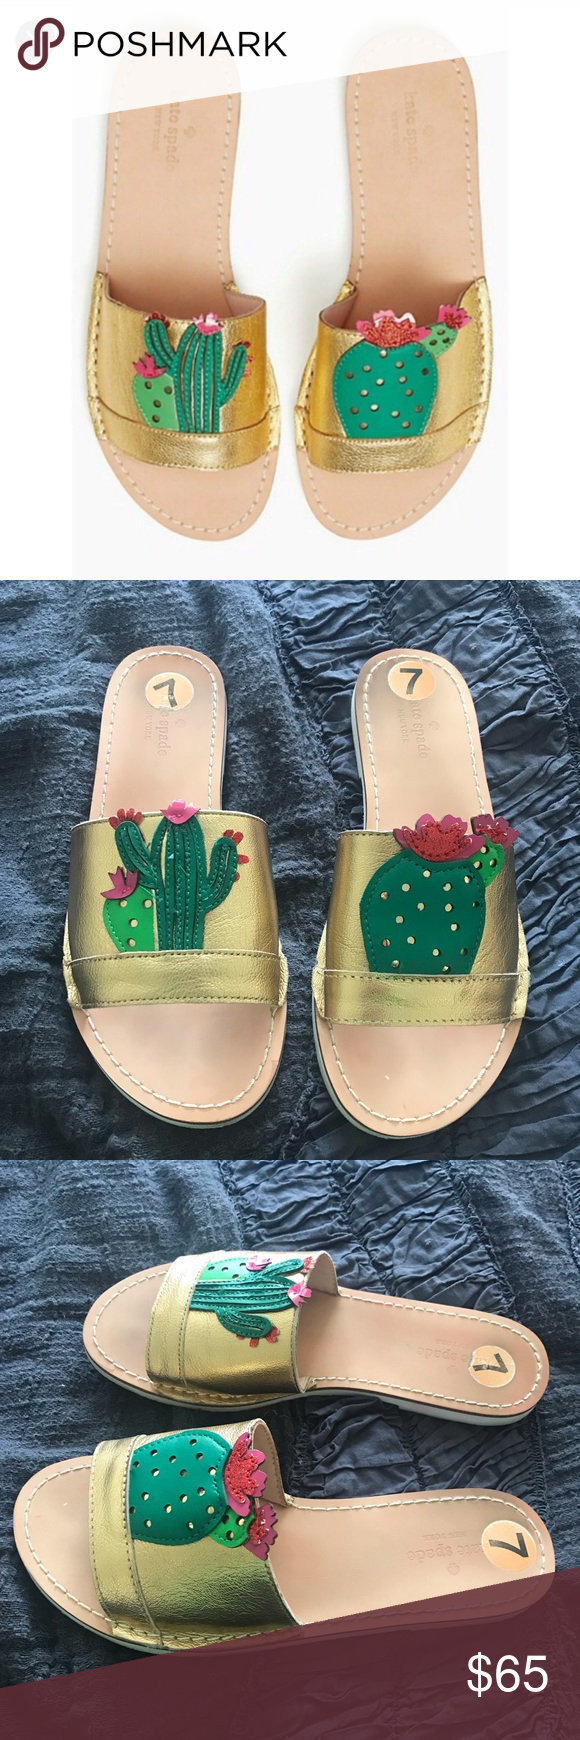 debee7e6be92 Kate Spade Iguana Cactus Sandals Like new! Only worn a few times. excellent  condition